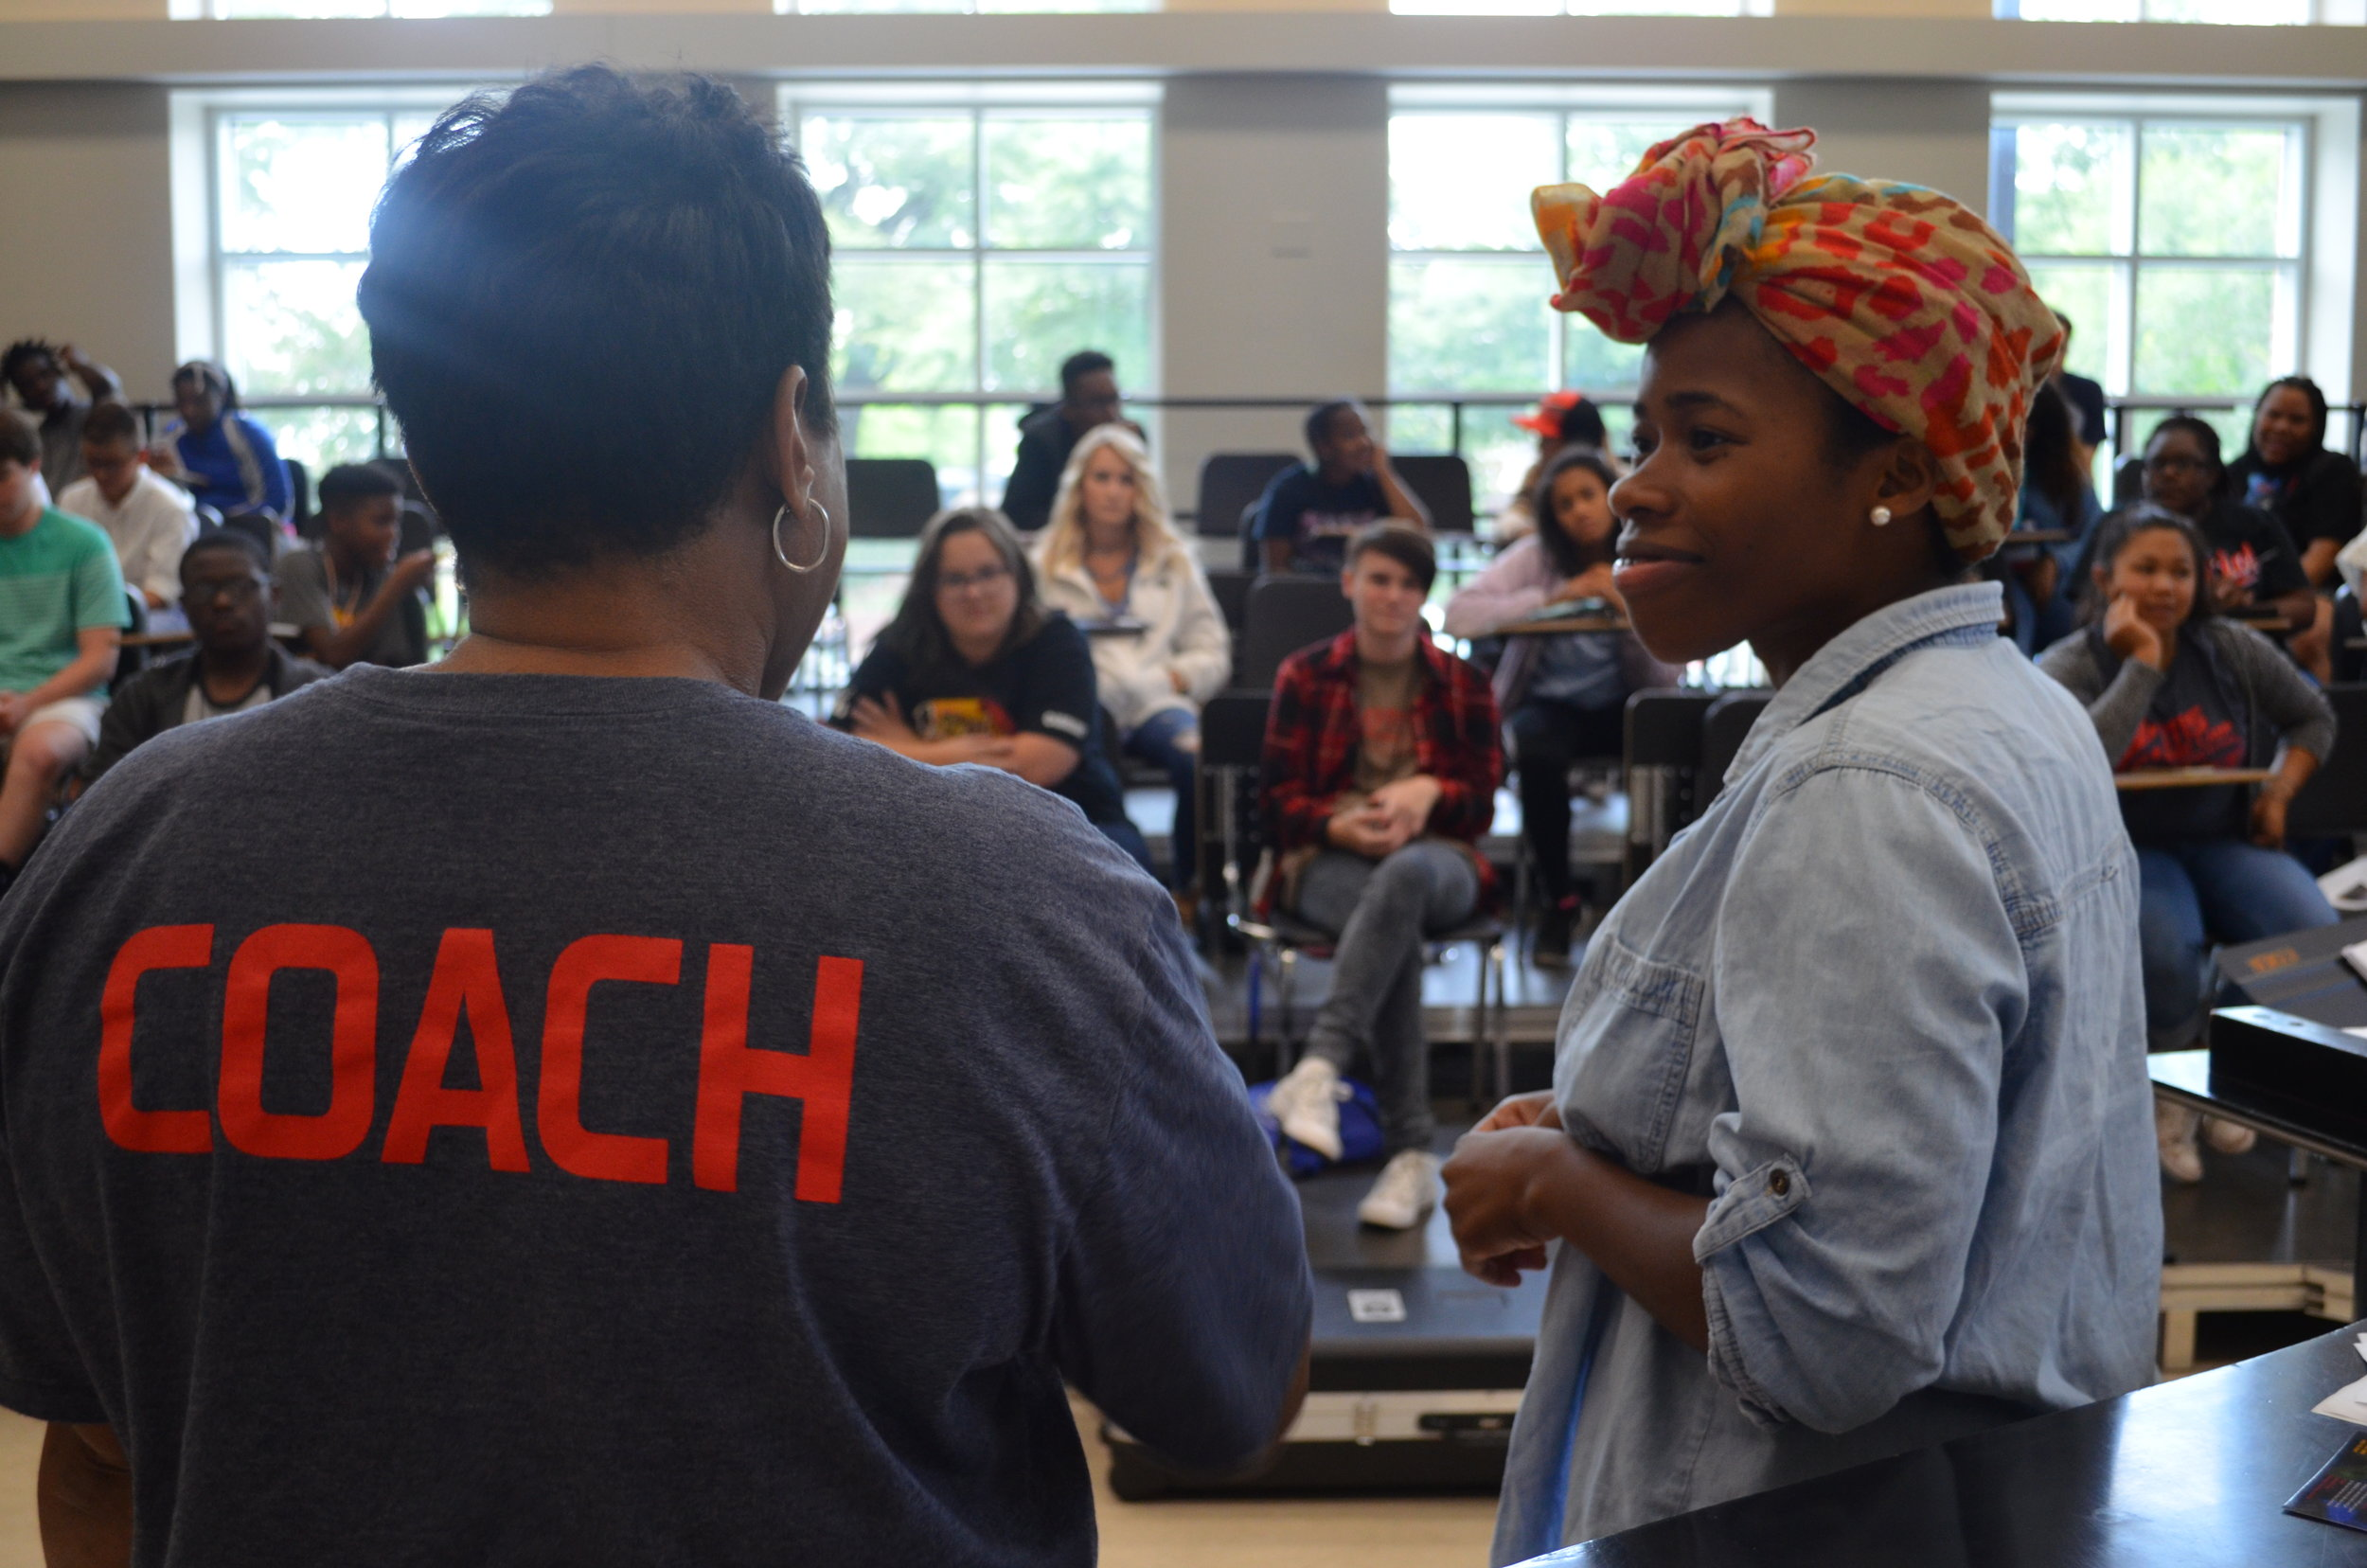 Opera singer, Jasmine Habersham, stopped buy camp and sang a song for them.